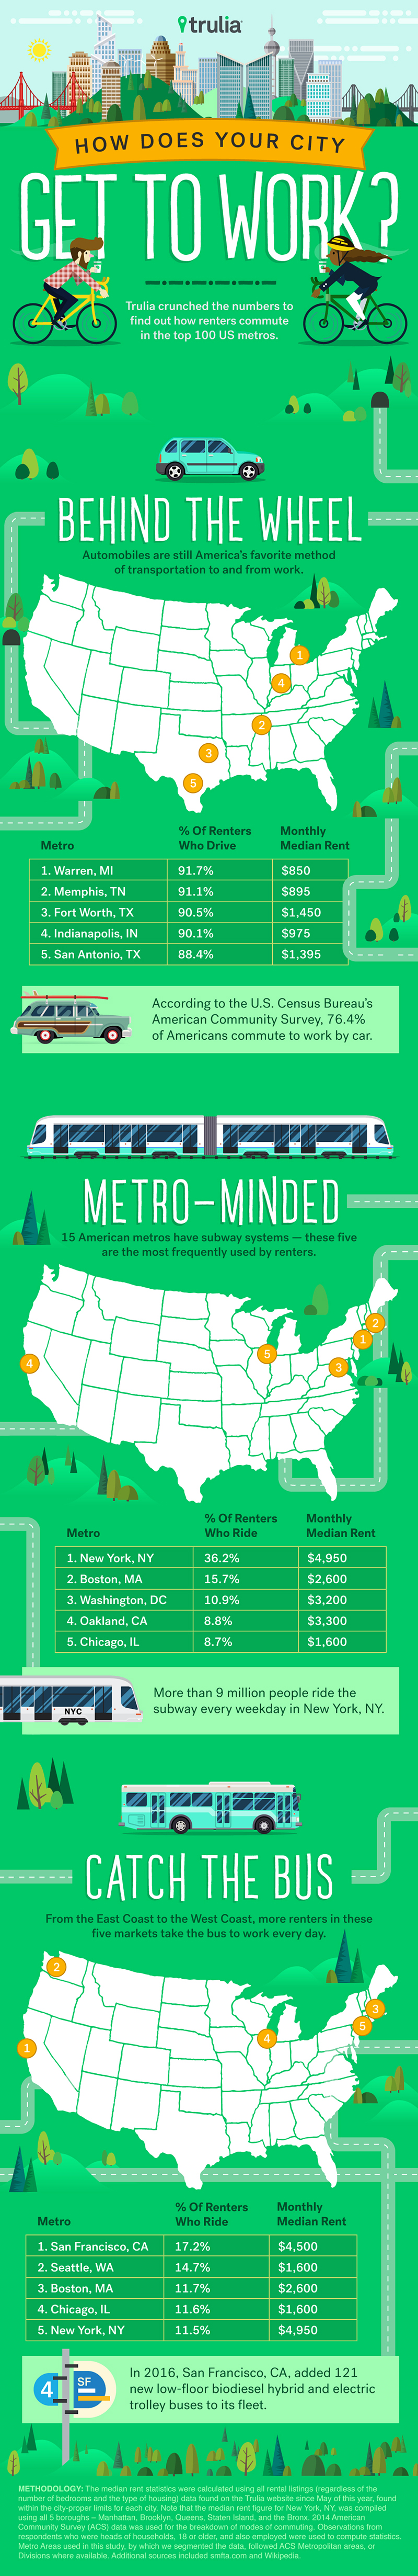 Trulia-Miles-Quillen-Infographic-How-Does-Your-City-Get-To-Work